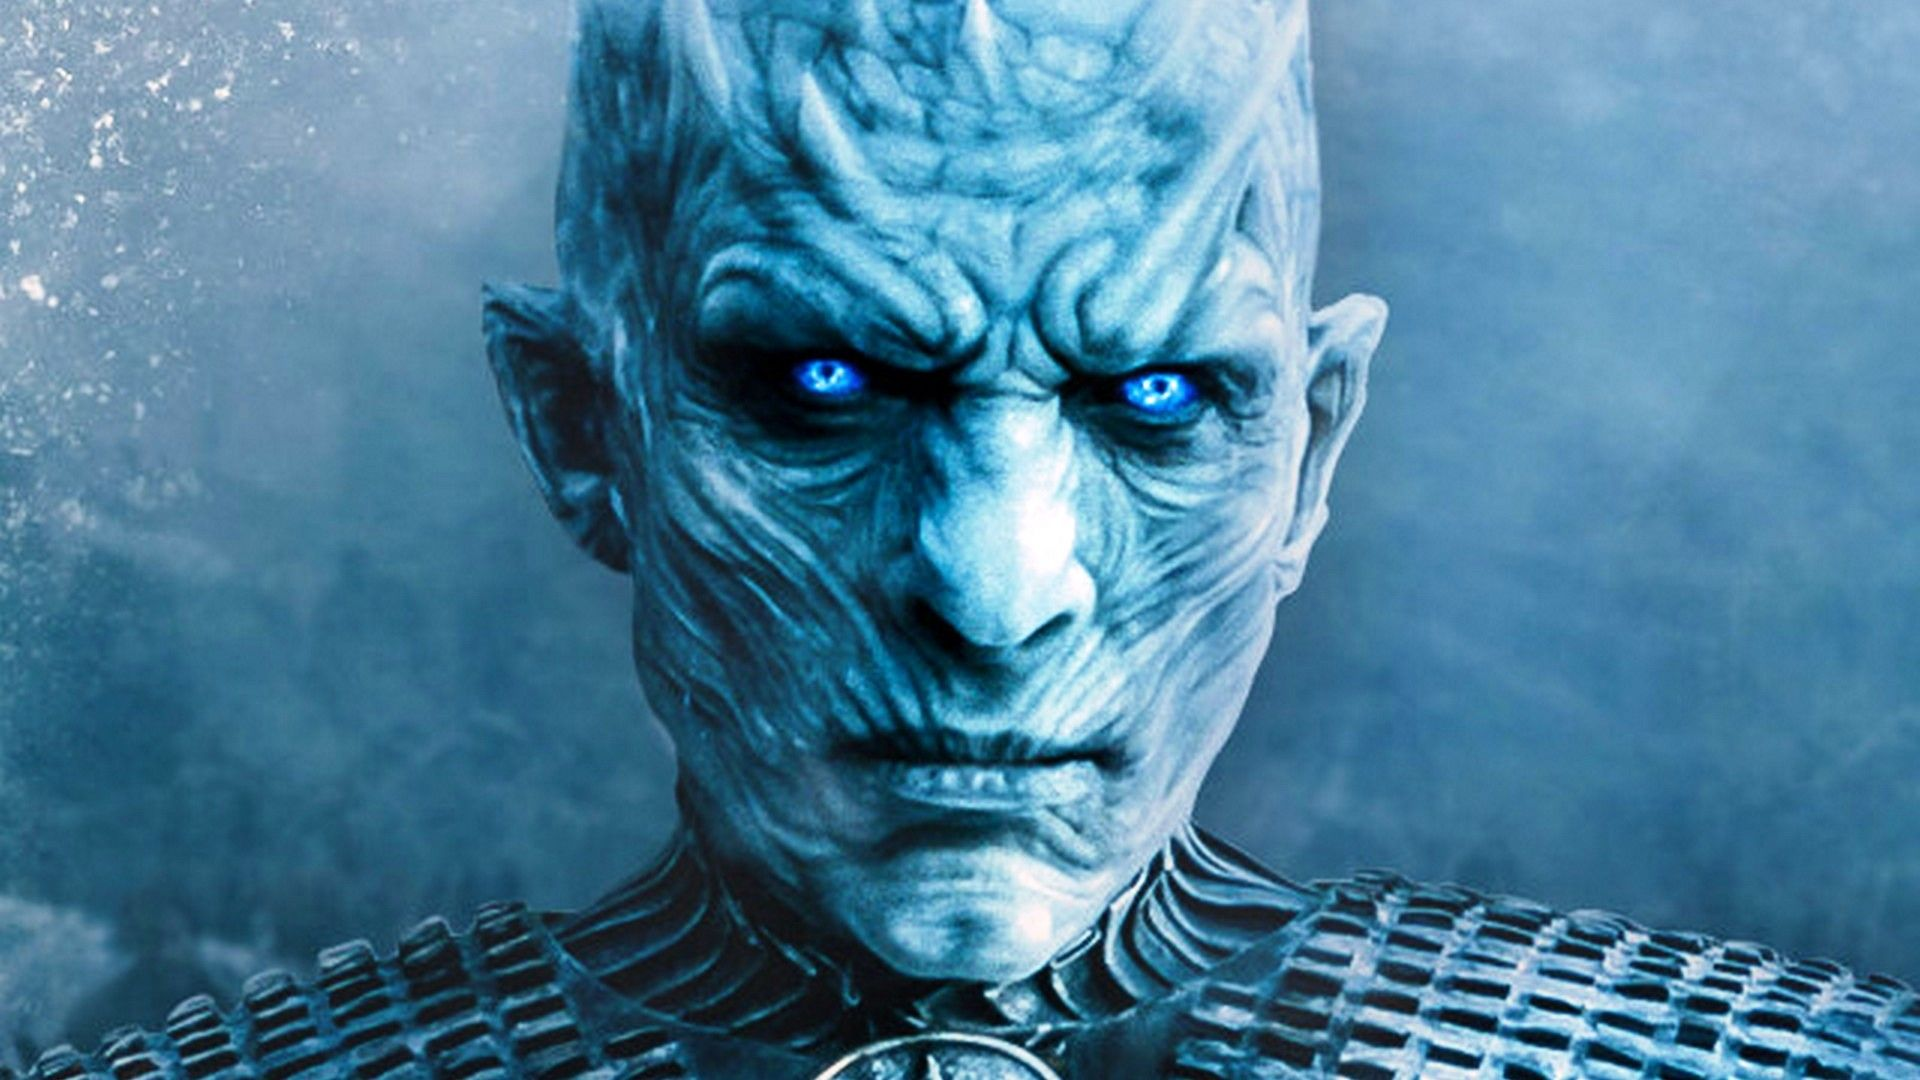 Game Of Thrones Night King Wallpapers Top Free Game Of Thrones Night King Backgrounds Wallpaperaccess